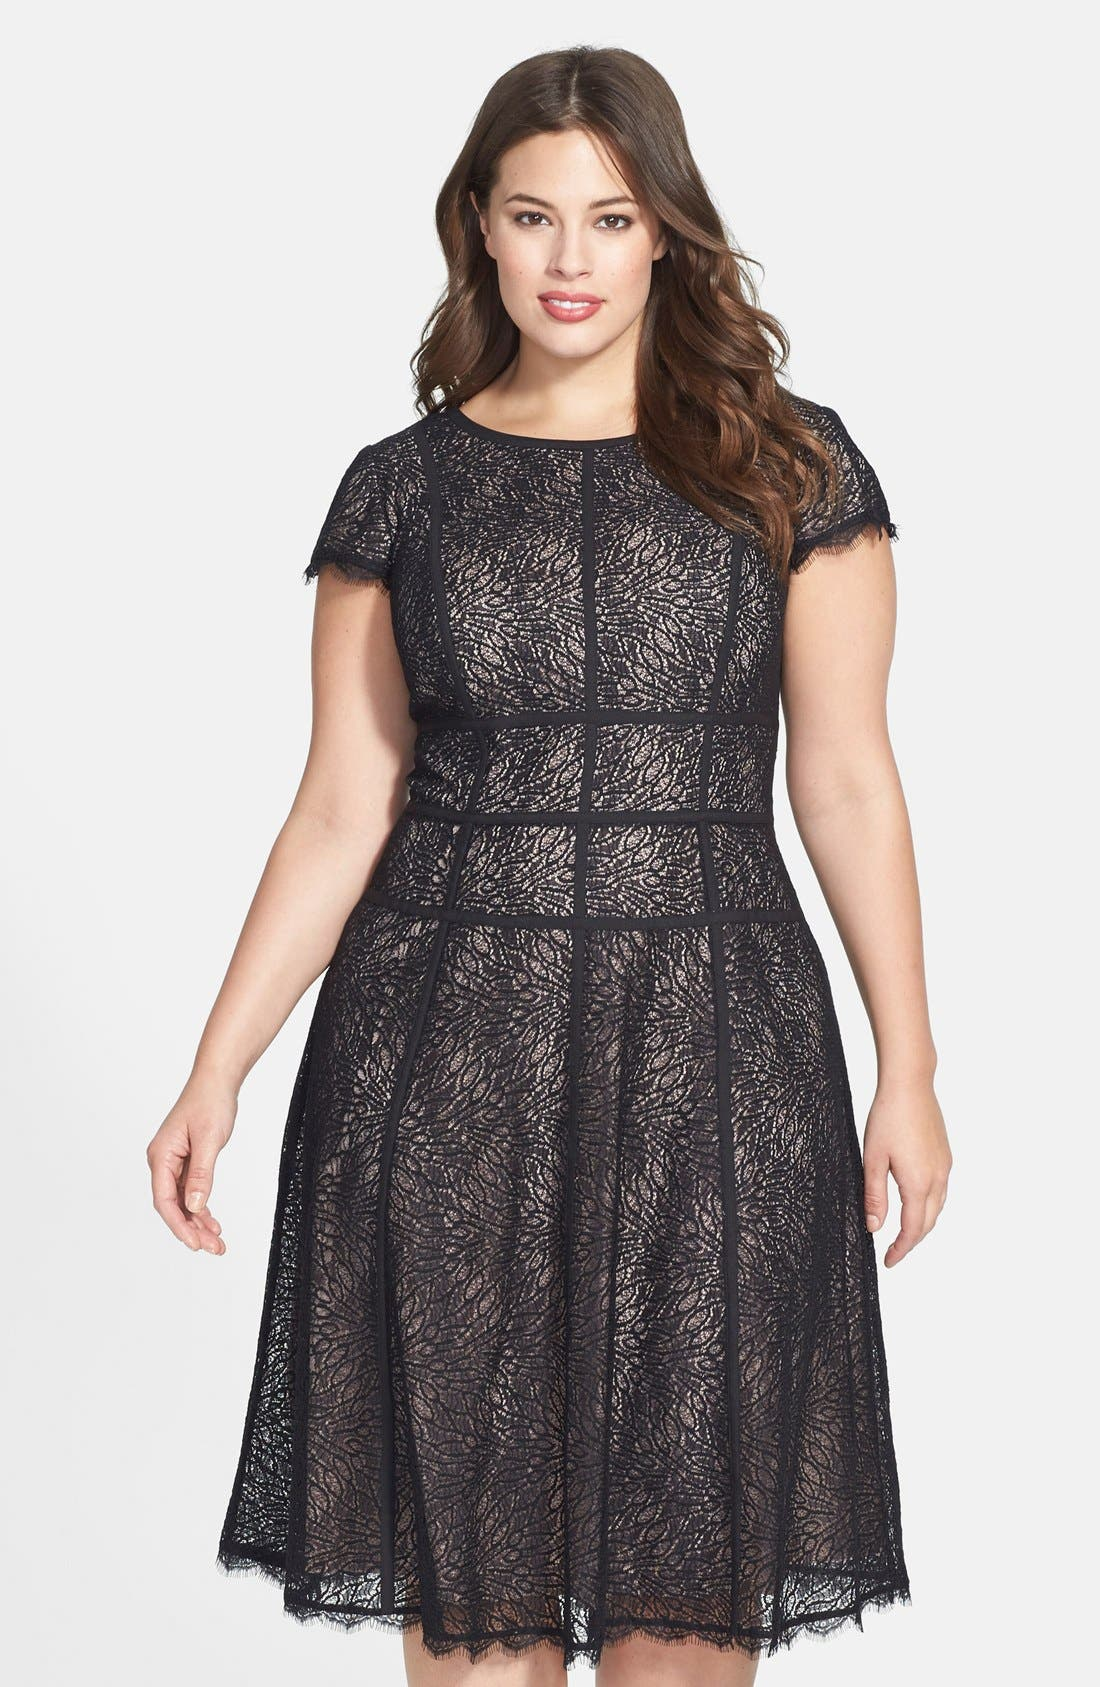 Alternate Image 1 Selected - Adrianna Papell 'Converging' Banded Lace Dress (Plus Size)